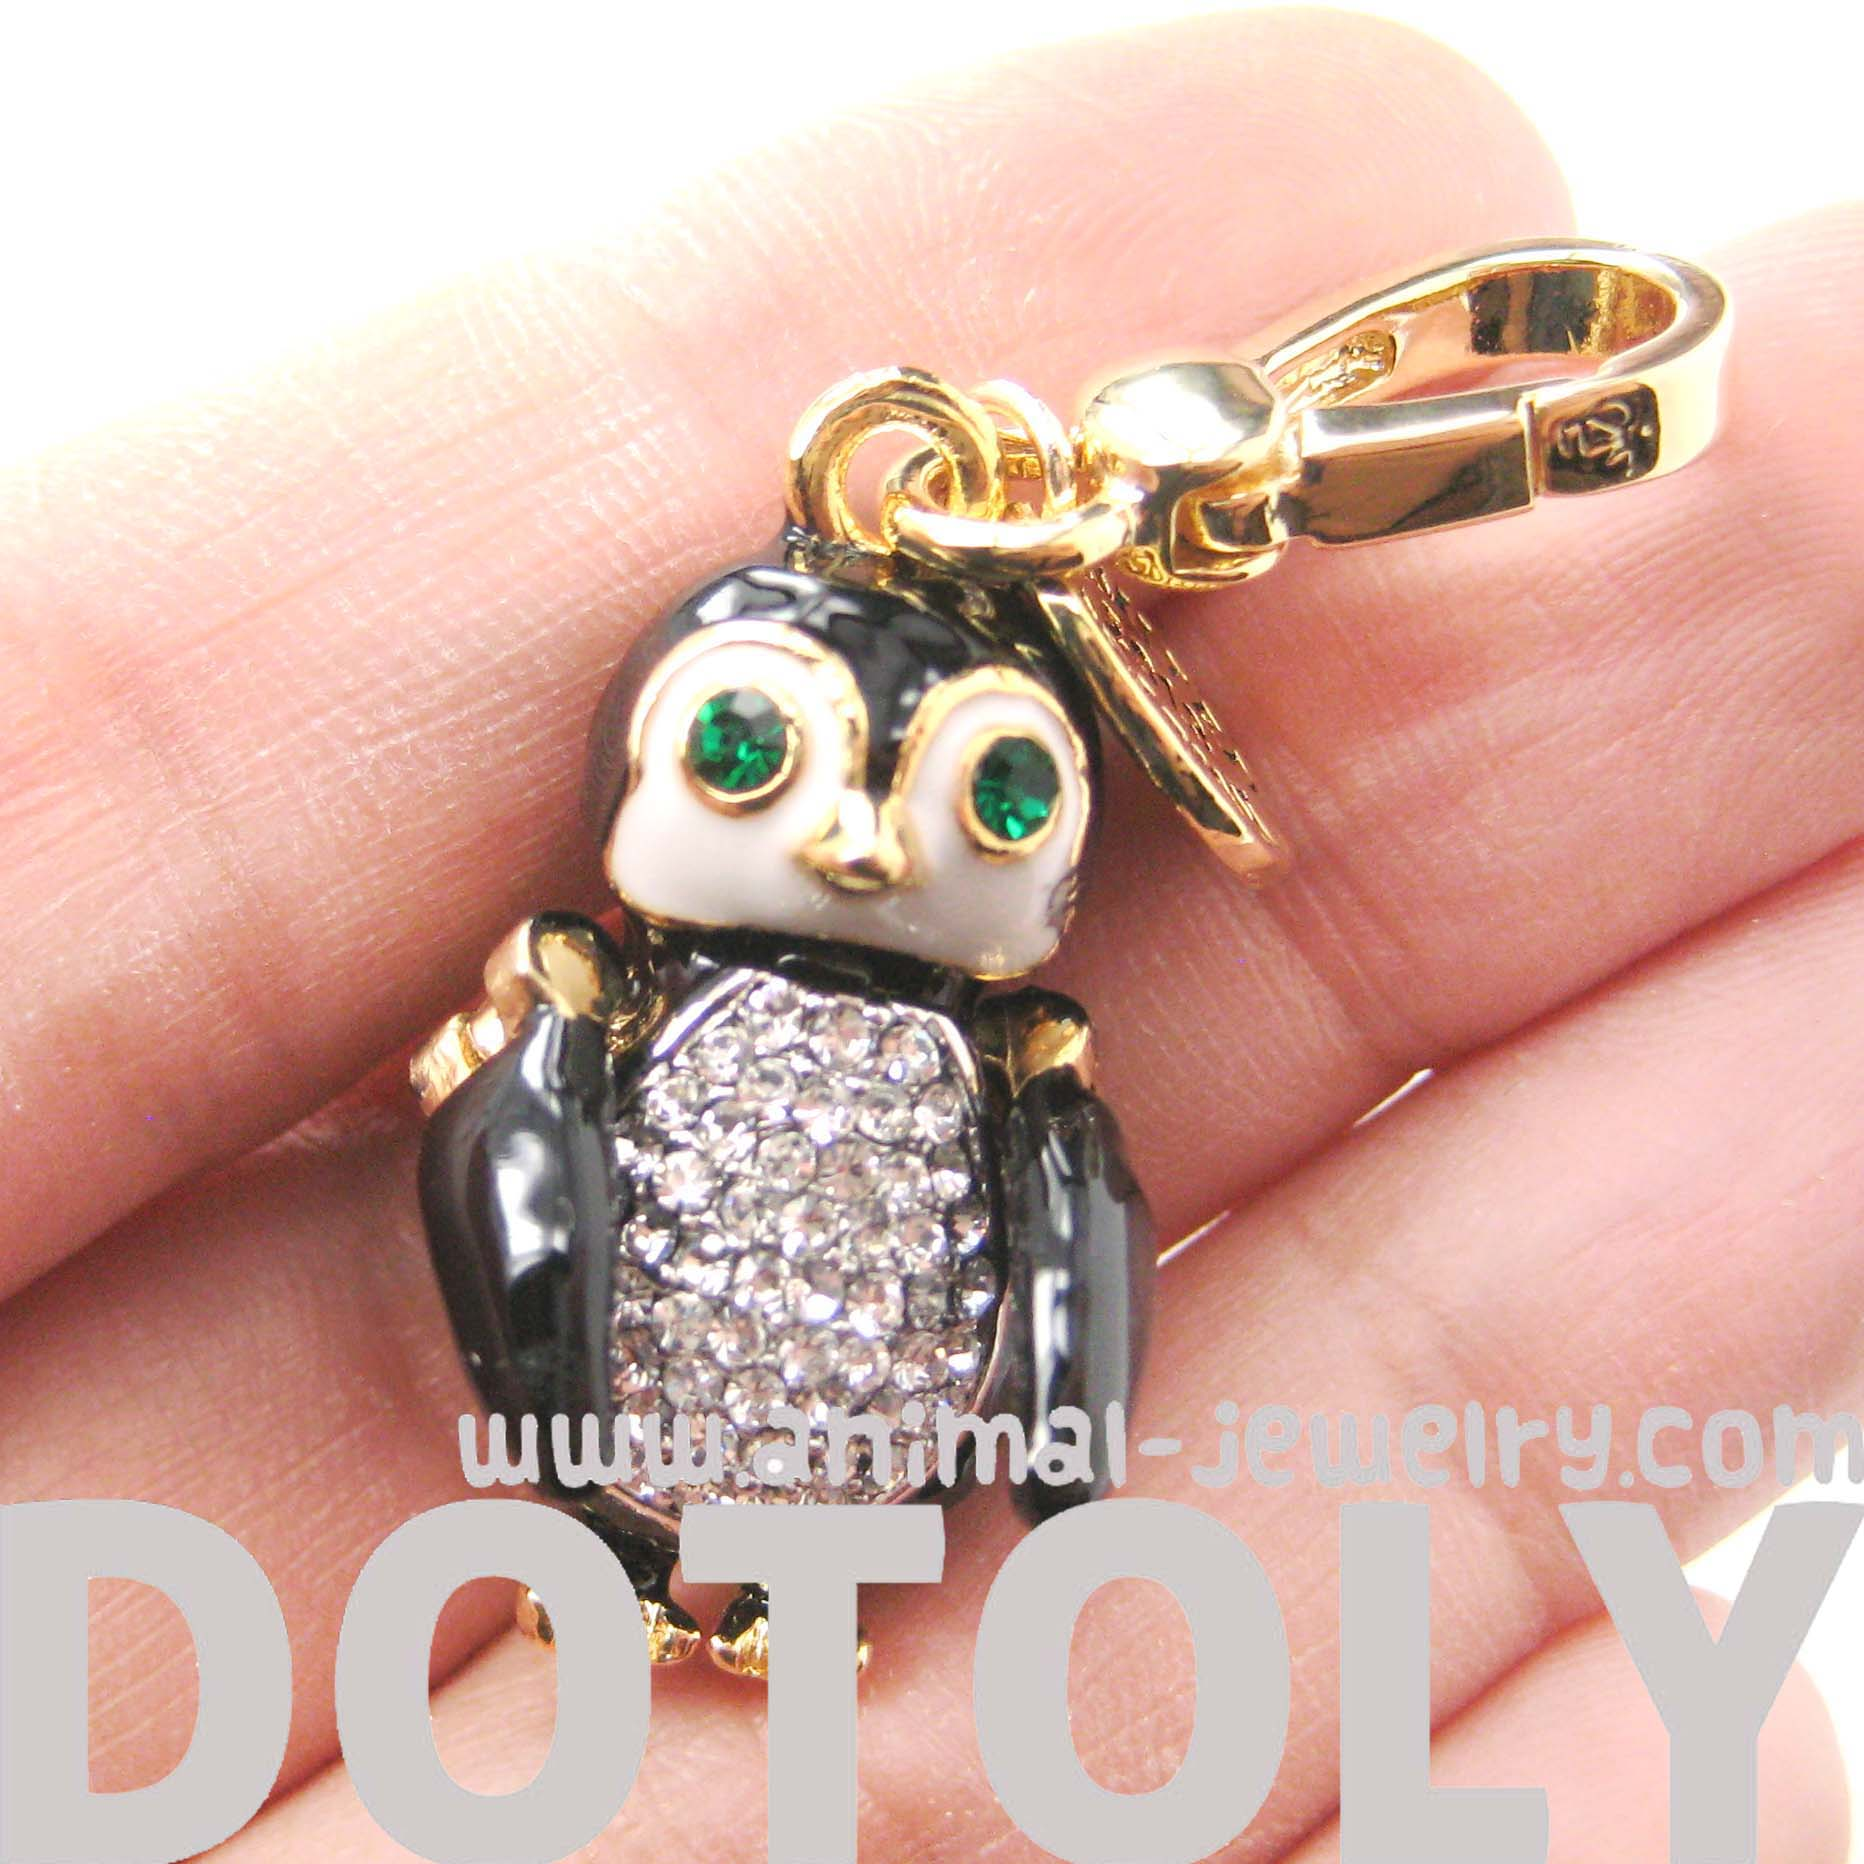 penguin-bird-animal-pendant-necklace-limited-edition